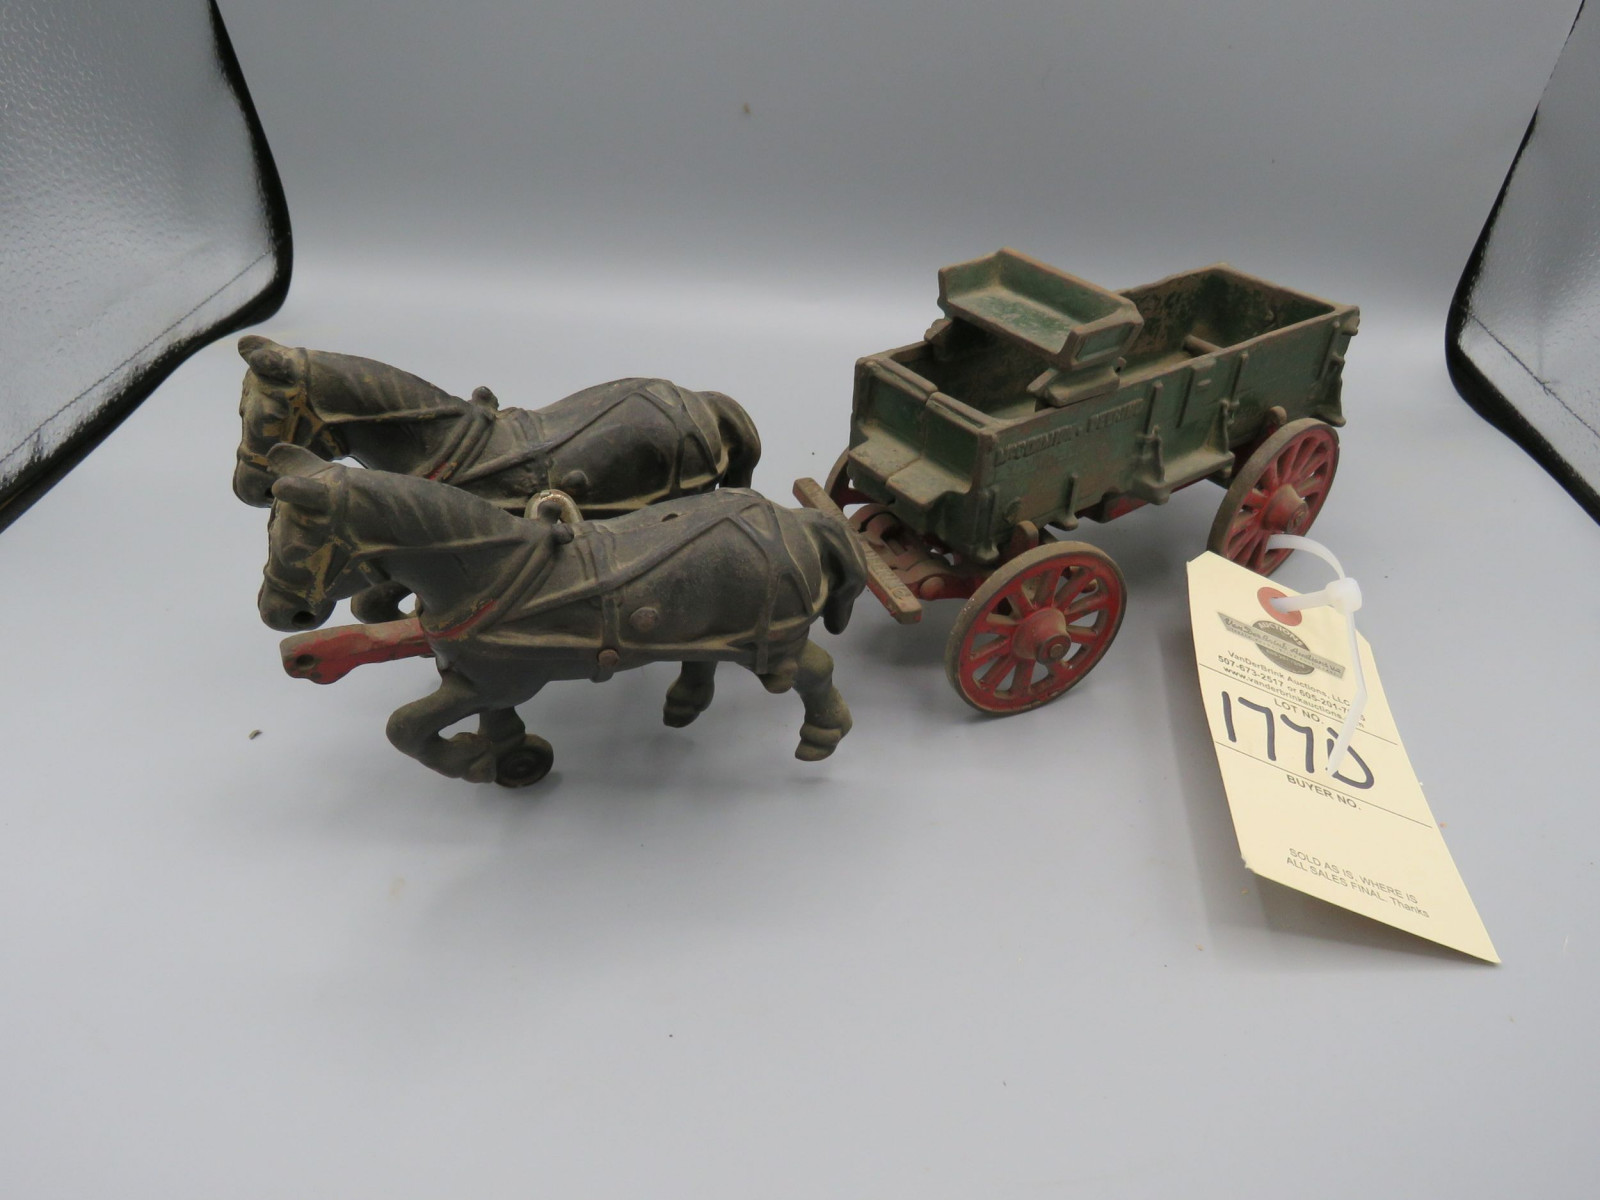 Arcade Cast Iron McCormick Deering Wagon with Horses No Driver  Approx. 10 inches - Image 1